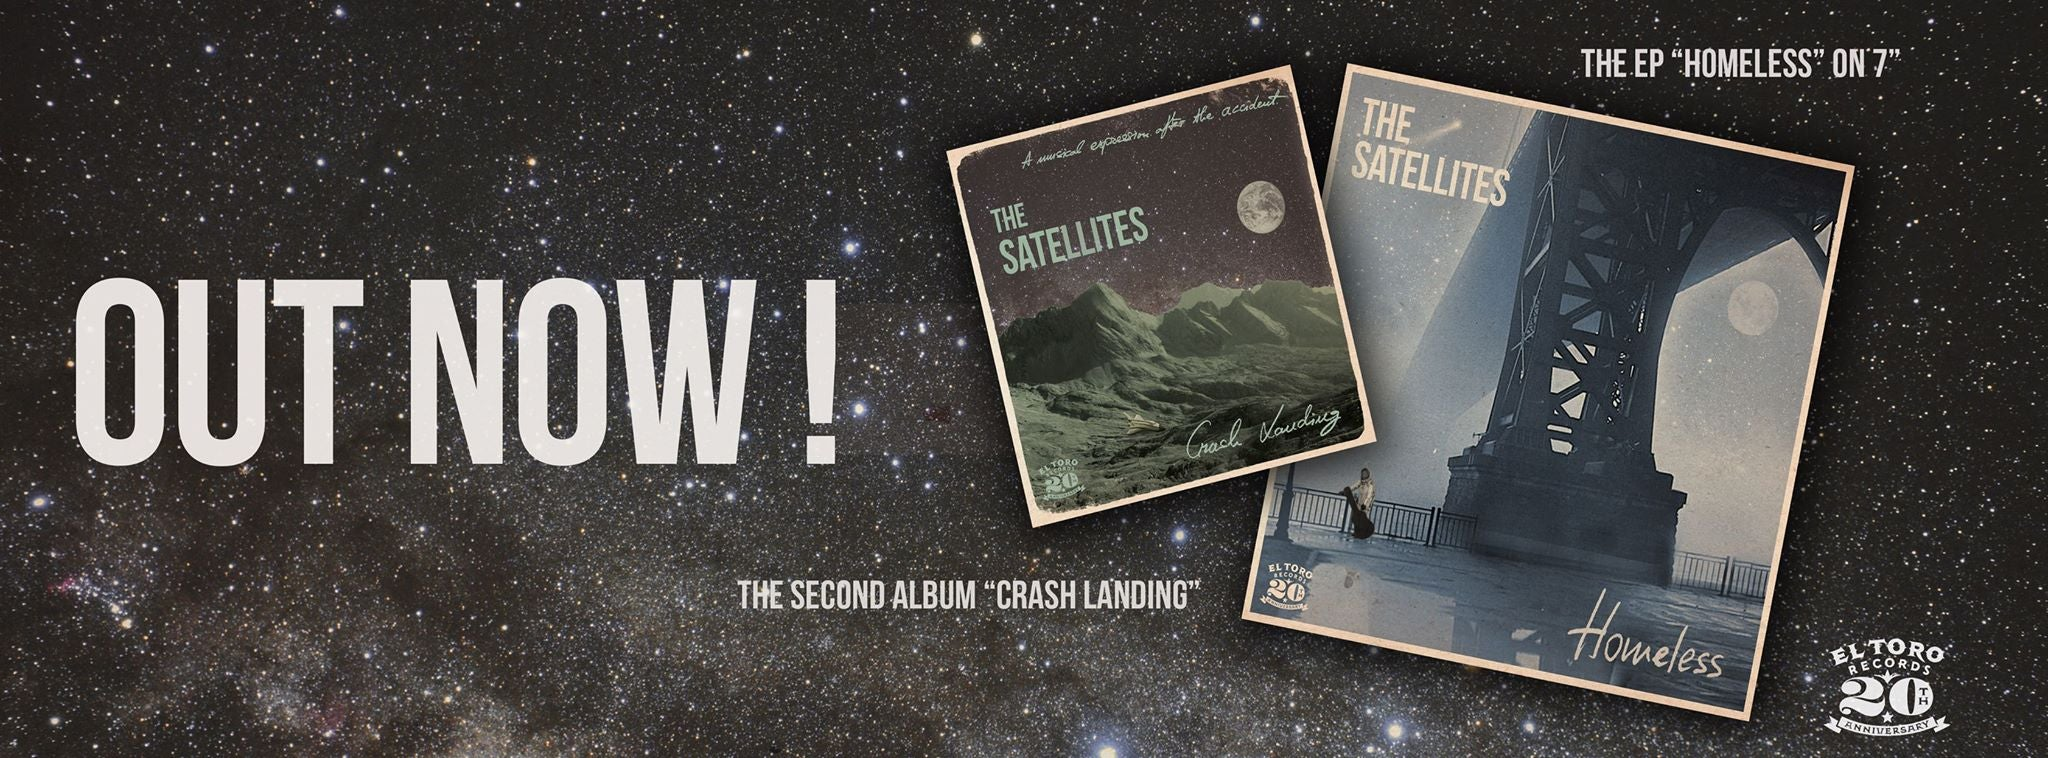 The Satellites Store